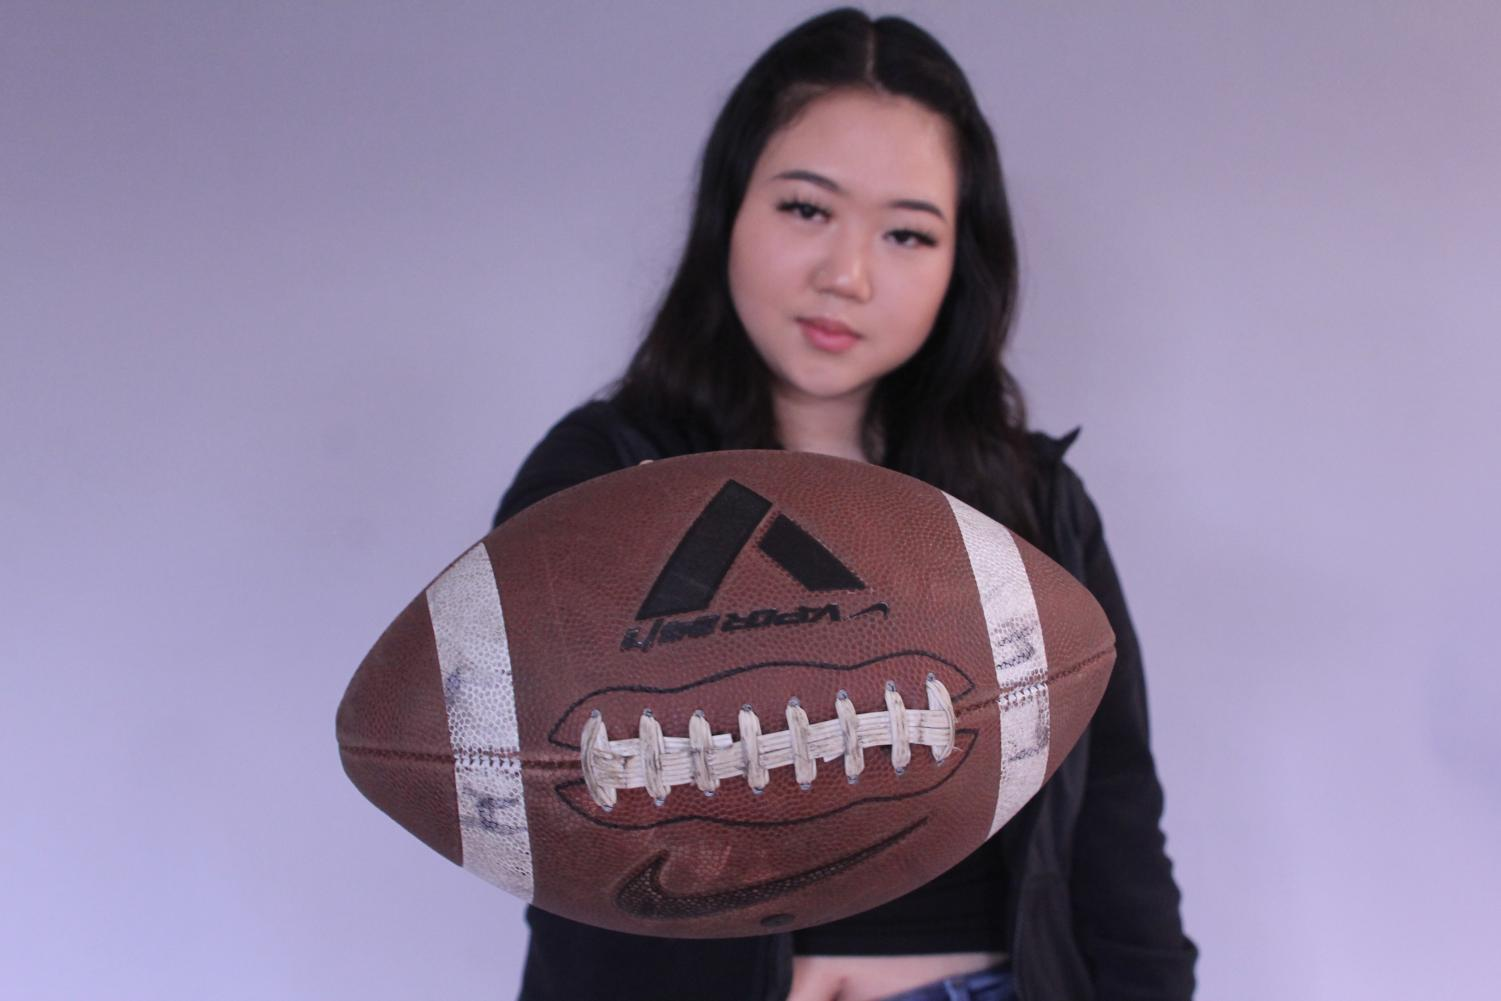 Cho shares that her two years on Lowell's football team has been life-changing.